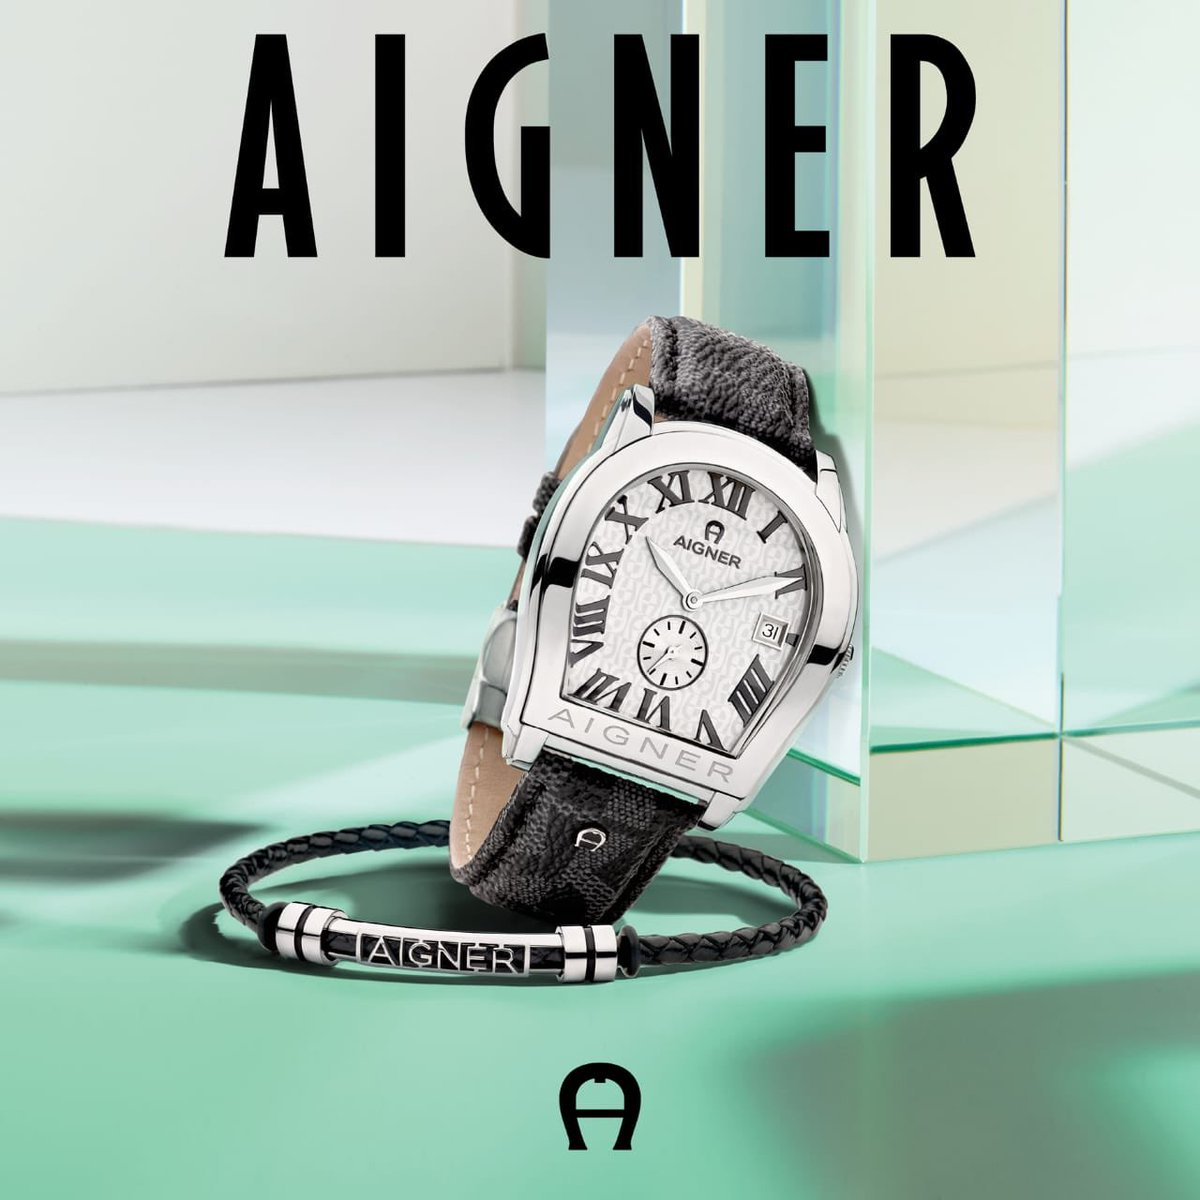 264dbdafcf25c AIGNER Modena is all about living in the moment and making the most of it   Aigner  Dadass19  ParisGalleryKSA  ParisGallery  PG Aigner  آغنر   باريس غاليري ...